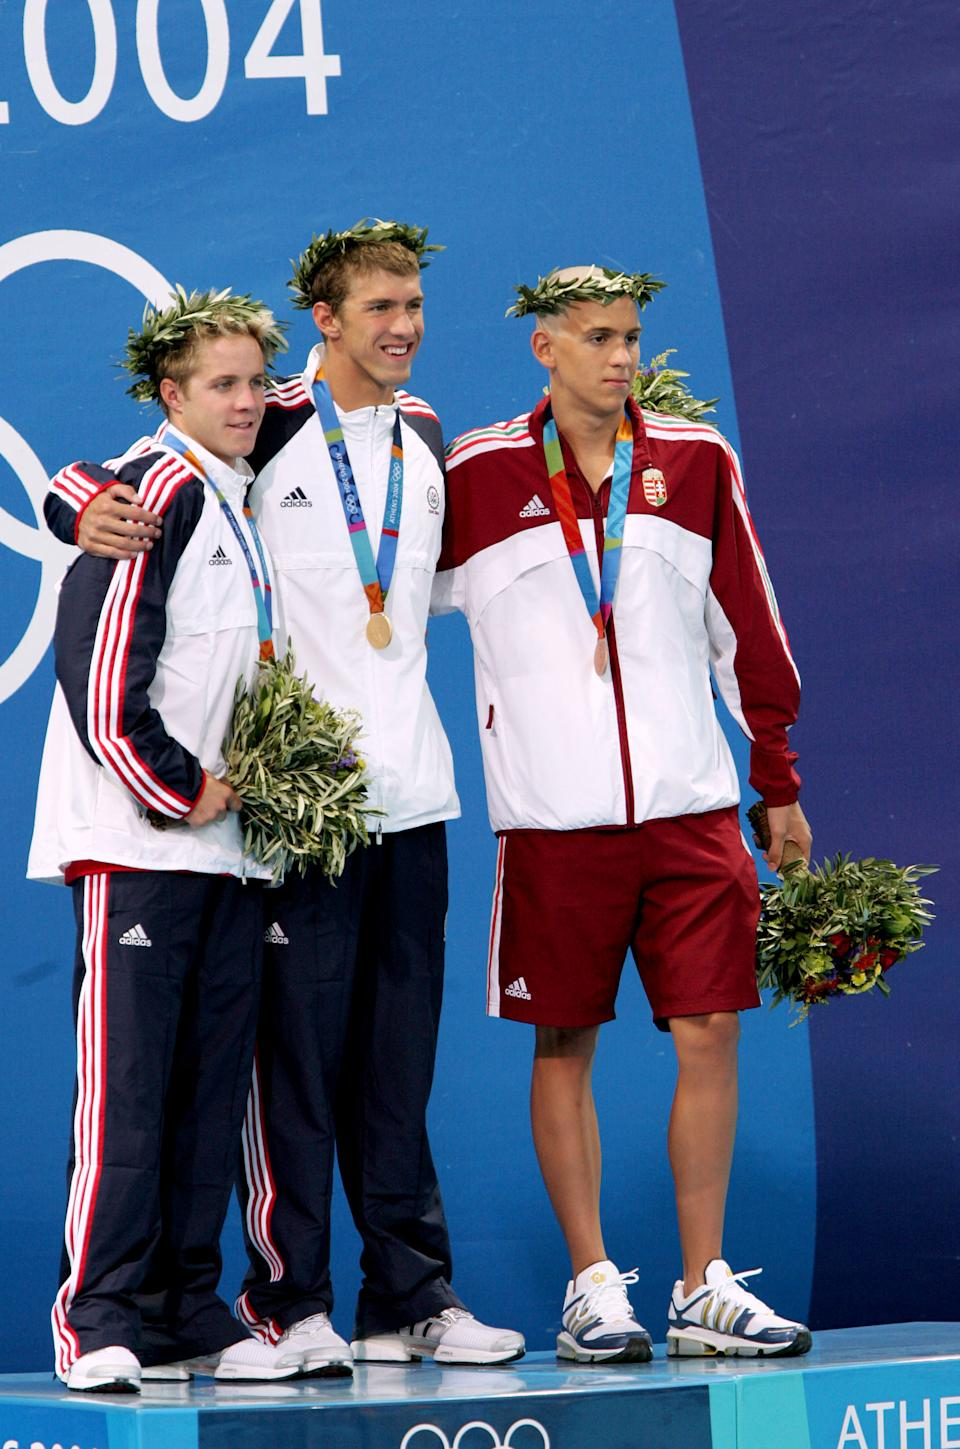 <b>Medal No. 1</b><br>Michael Phelps wins the Olympic gold and sets a new world record in men's 400-meter Individual Medley in 4:08:26 ahead of compatriot Erik Vendt (left) and Hungary's Laszlo Cseh at the Olympic Aquatic Centre in Athens, Greece, August 14, 2004. It was the first of many Olympic medals for Phelps.